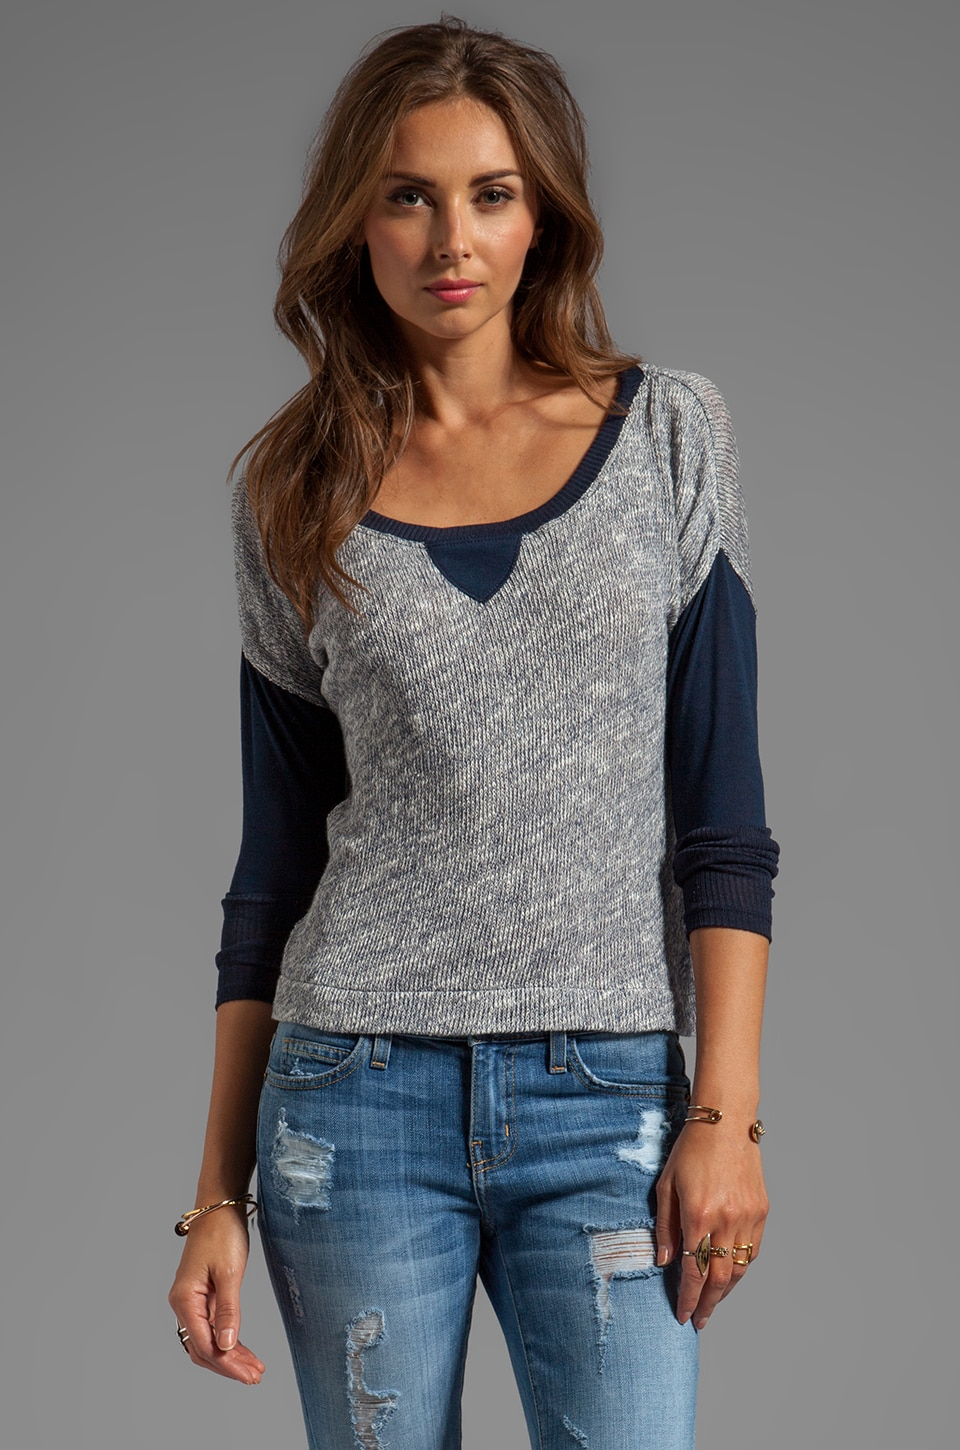 WOODLEIGH Lottie Top in Indigo